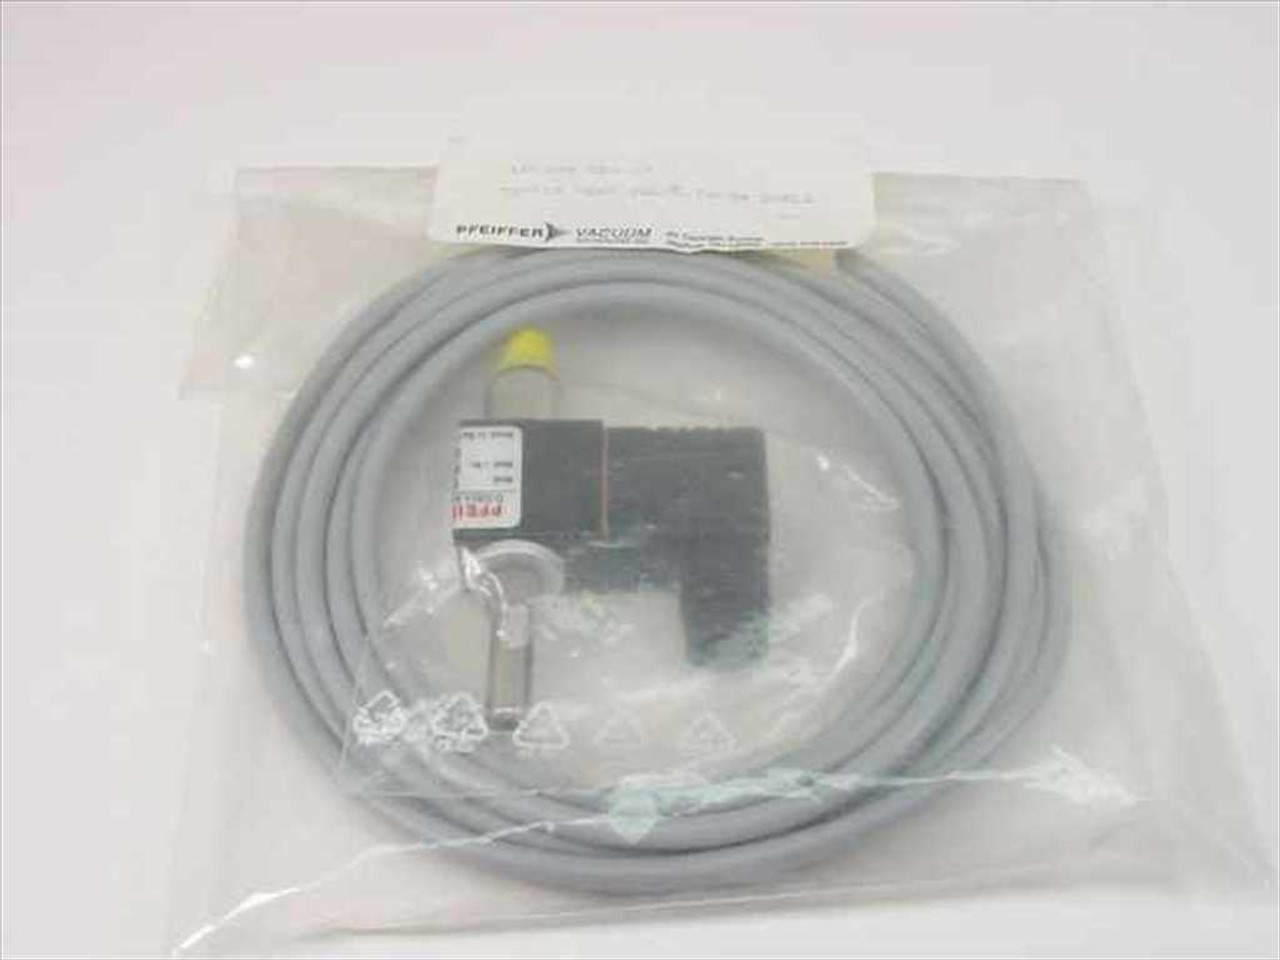 pfeiffer vacuum up 024 020 t tsf012 vent valve w th 3m cable recycledgoods com [ 1024 x 768 Pixel ]